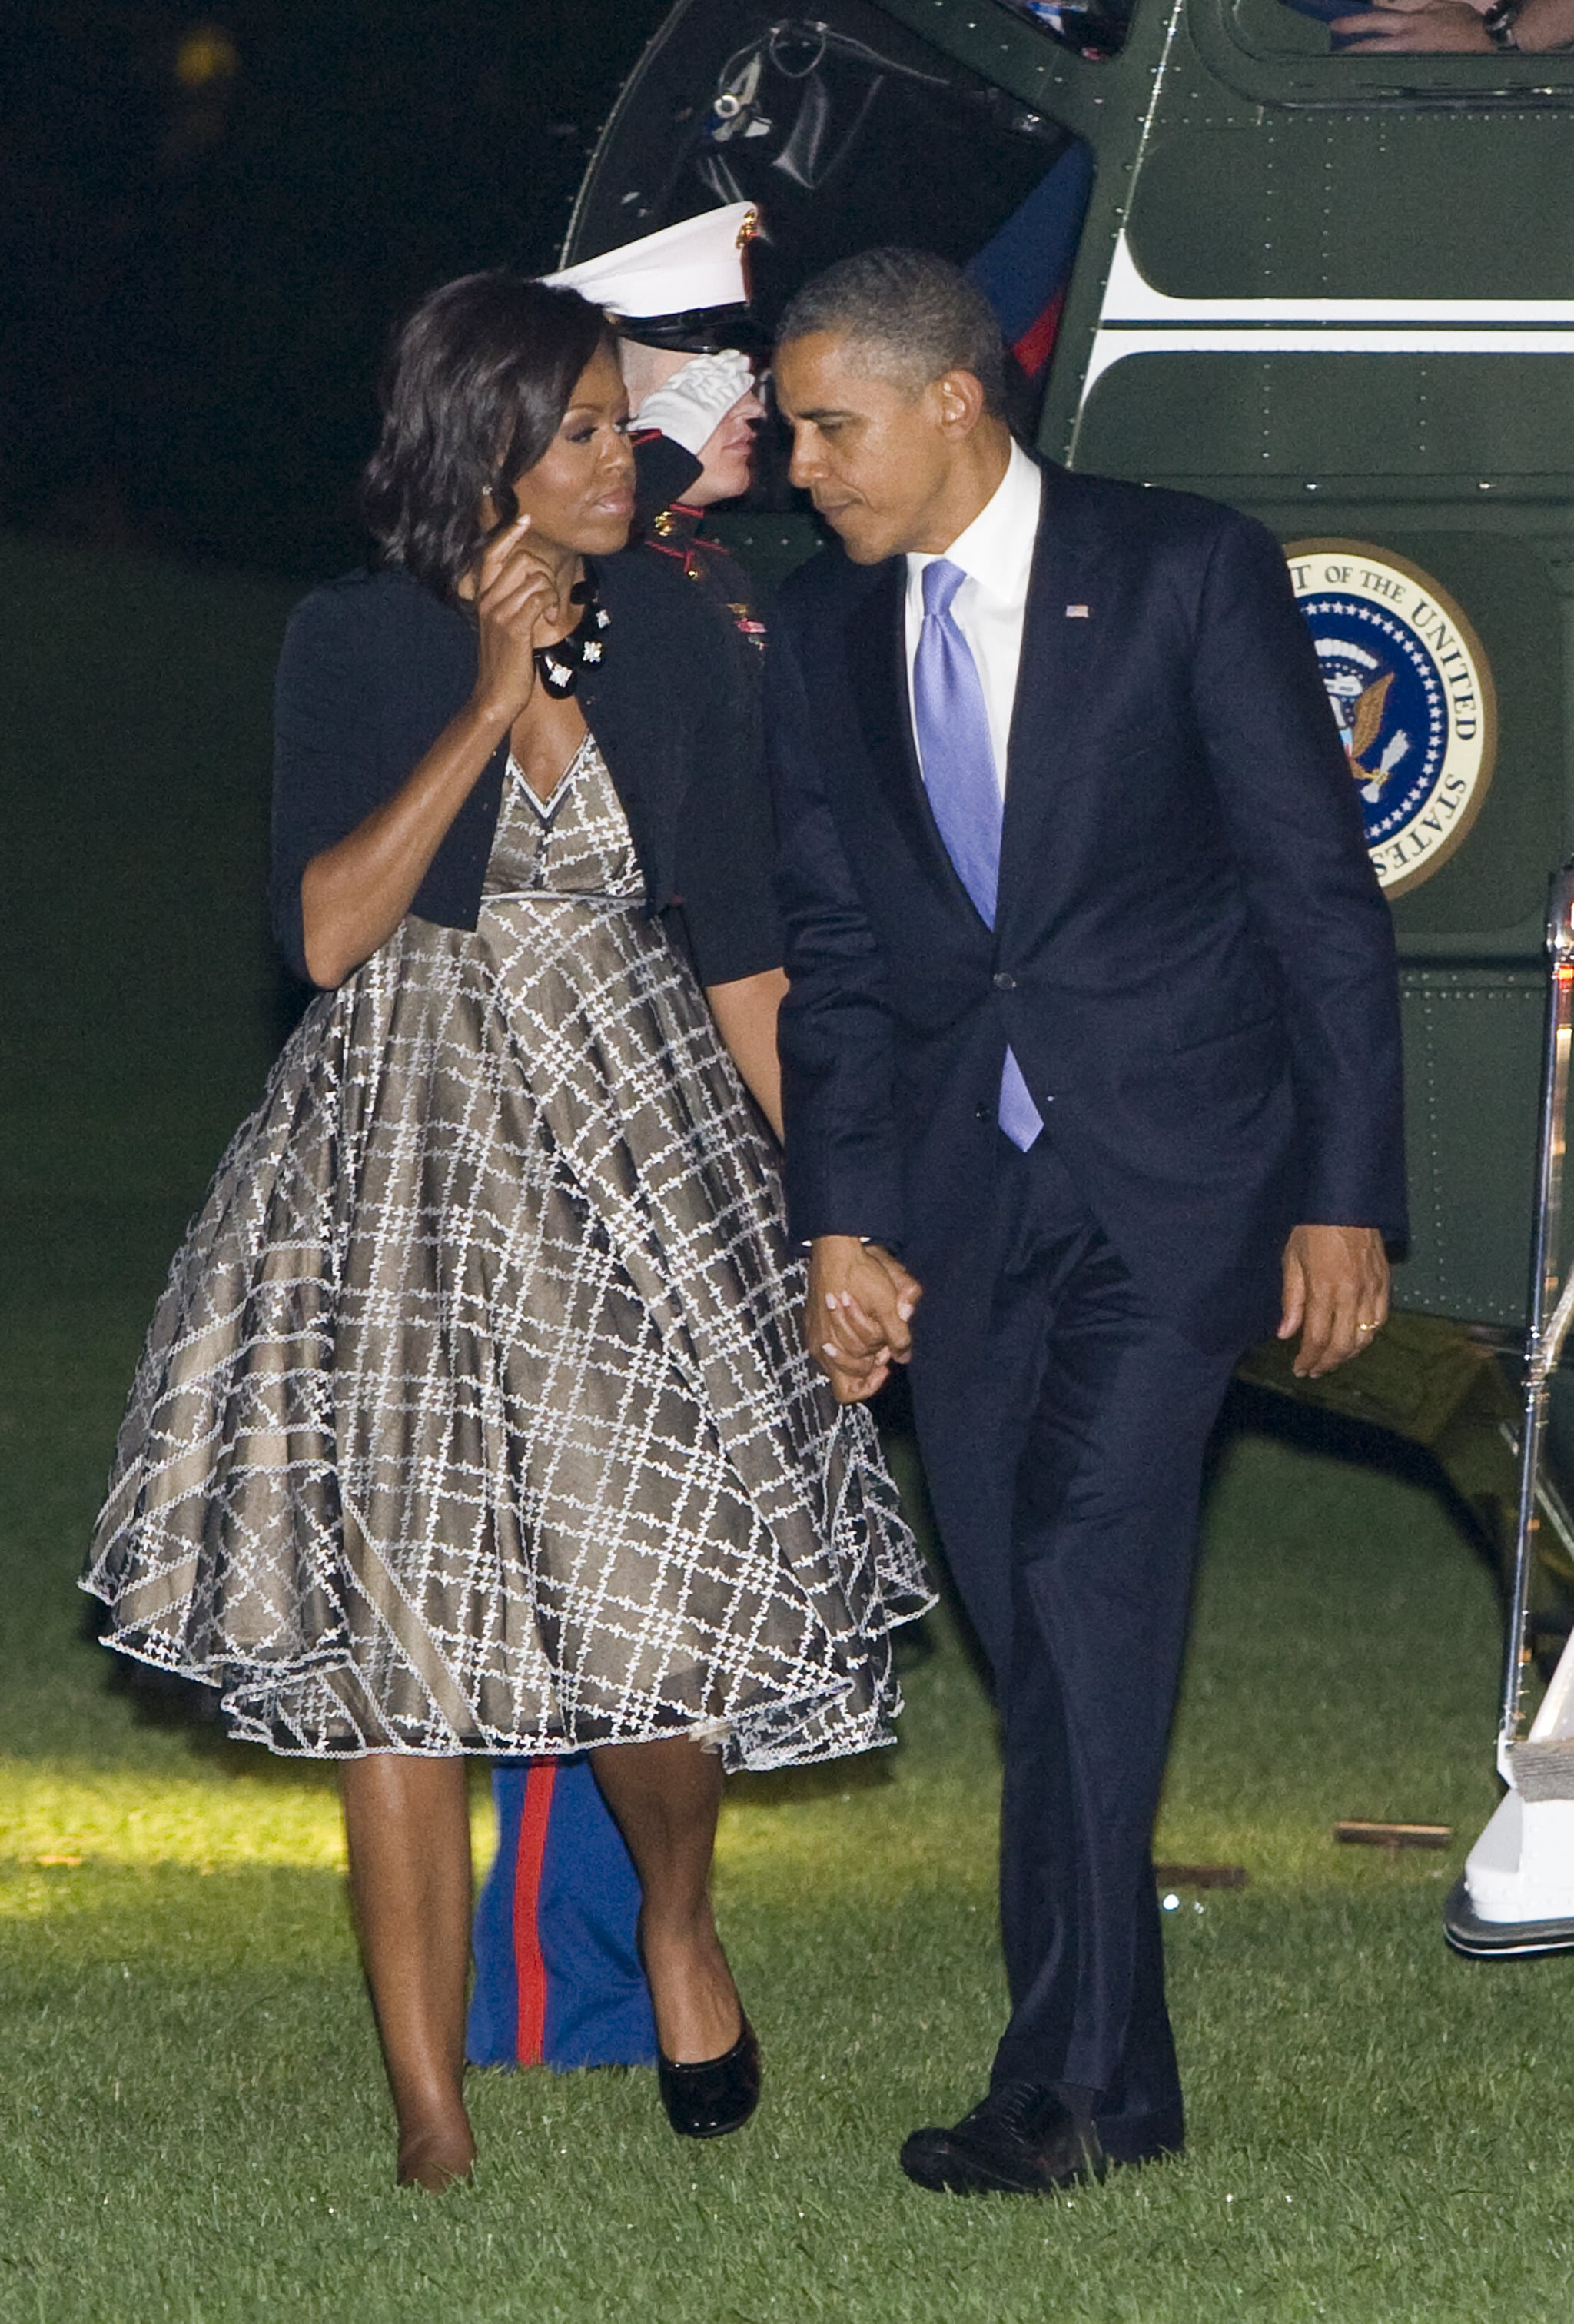 Arriving back at the White House, Michelle was spotted in an olive, tartan-inspired circle dress with a black cardigan.